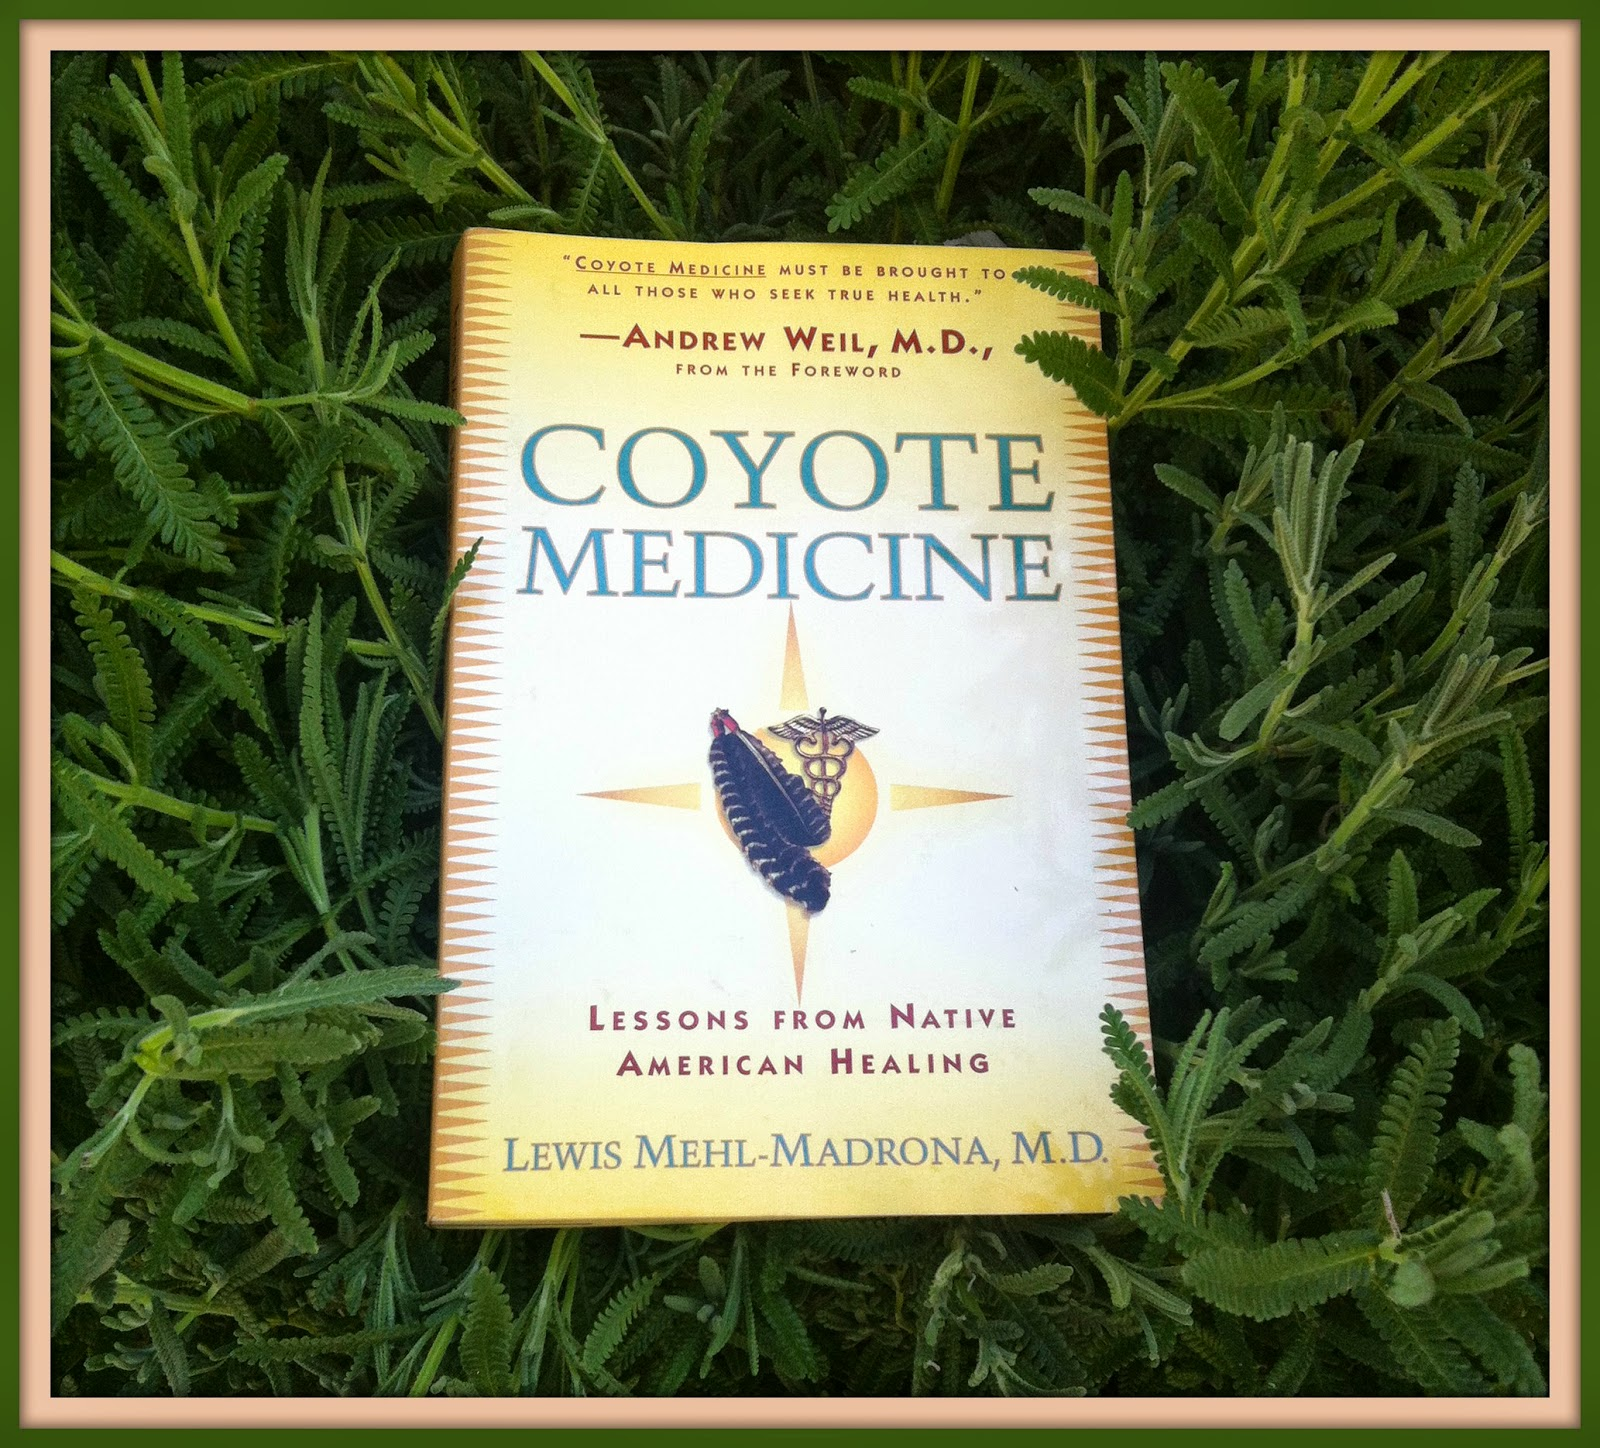 Coyote Medicine: Lessons from Native American Healing